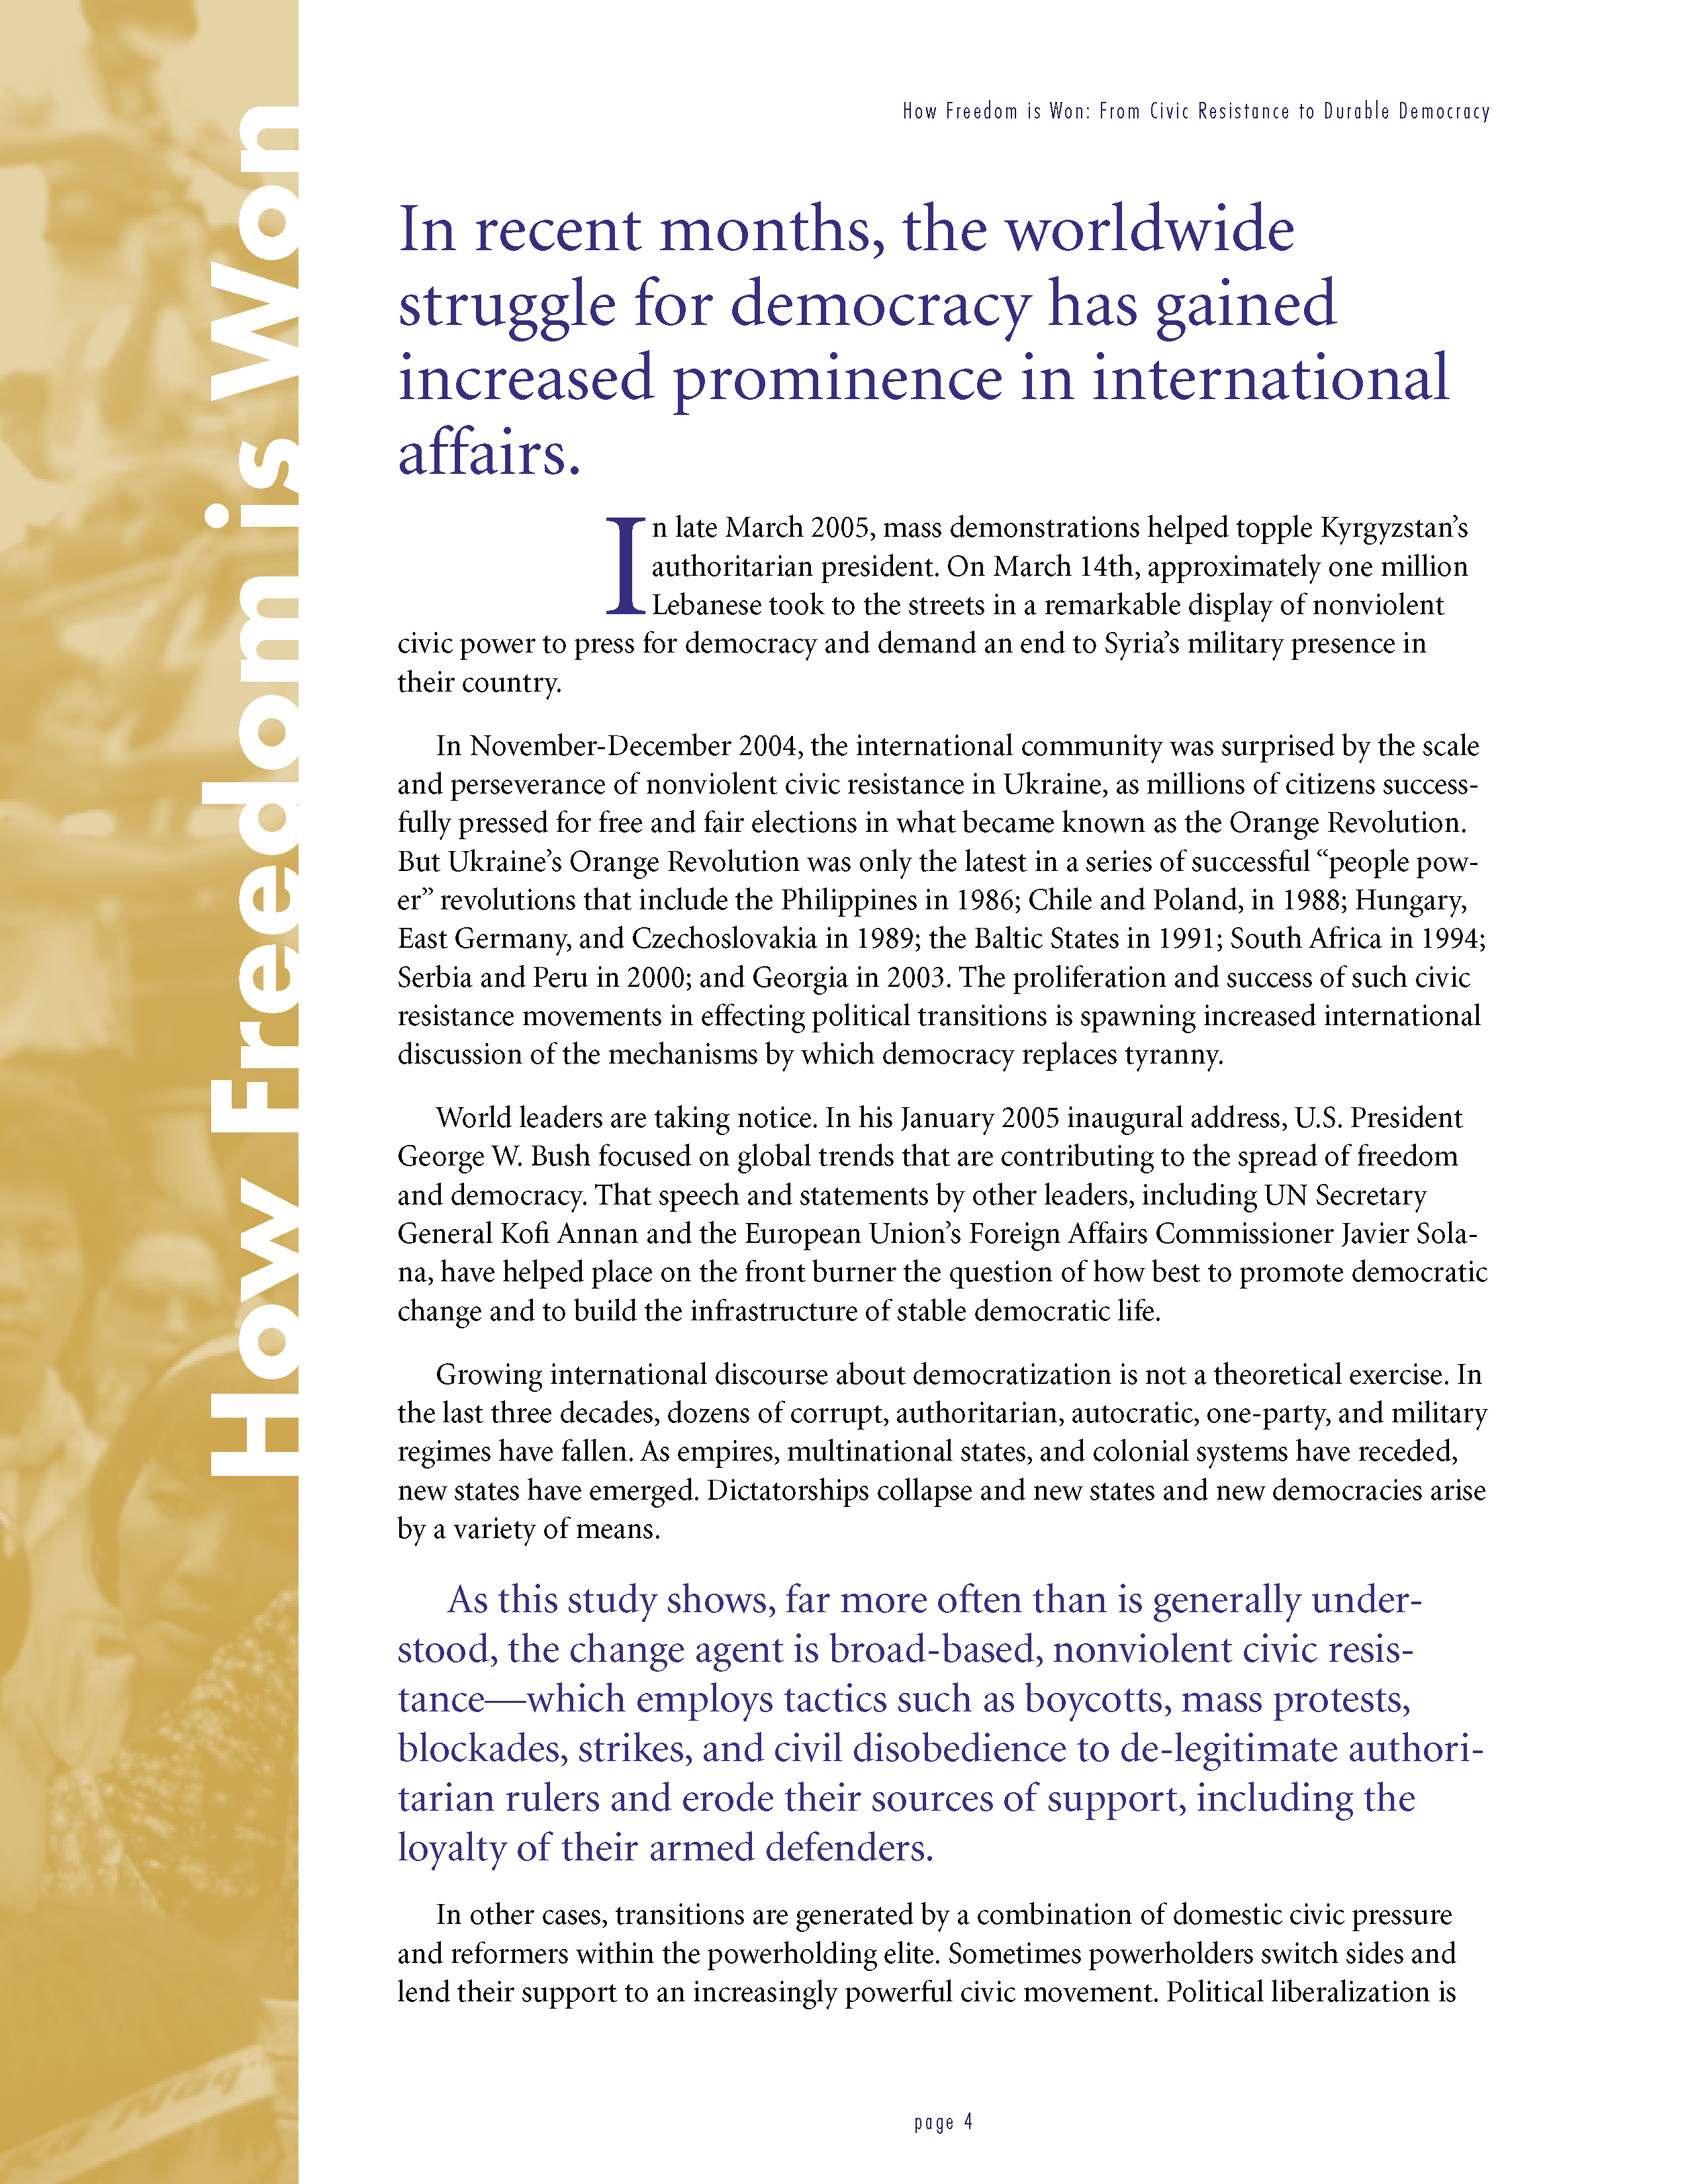 How Freedom is Won: From Civic Resistance to Durable Democracy